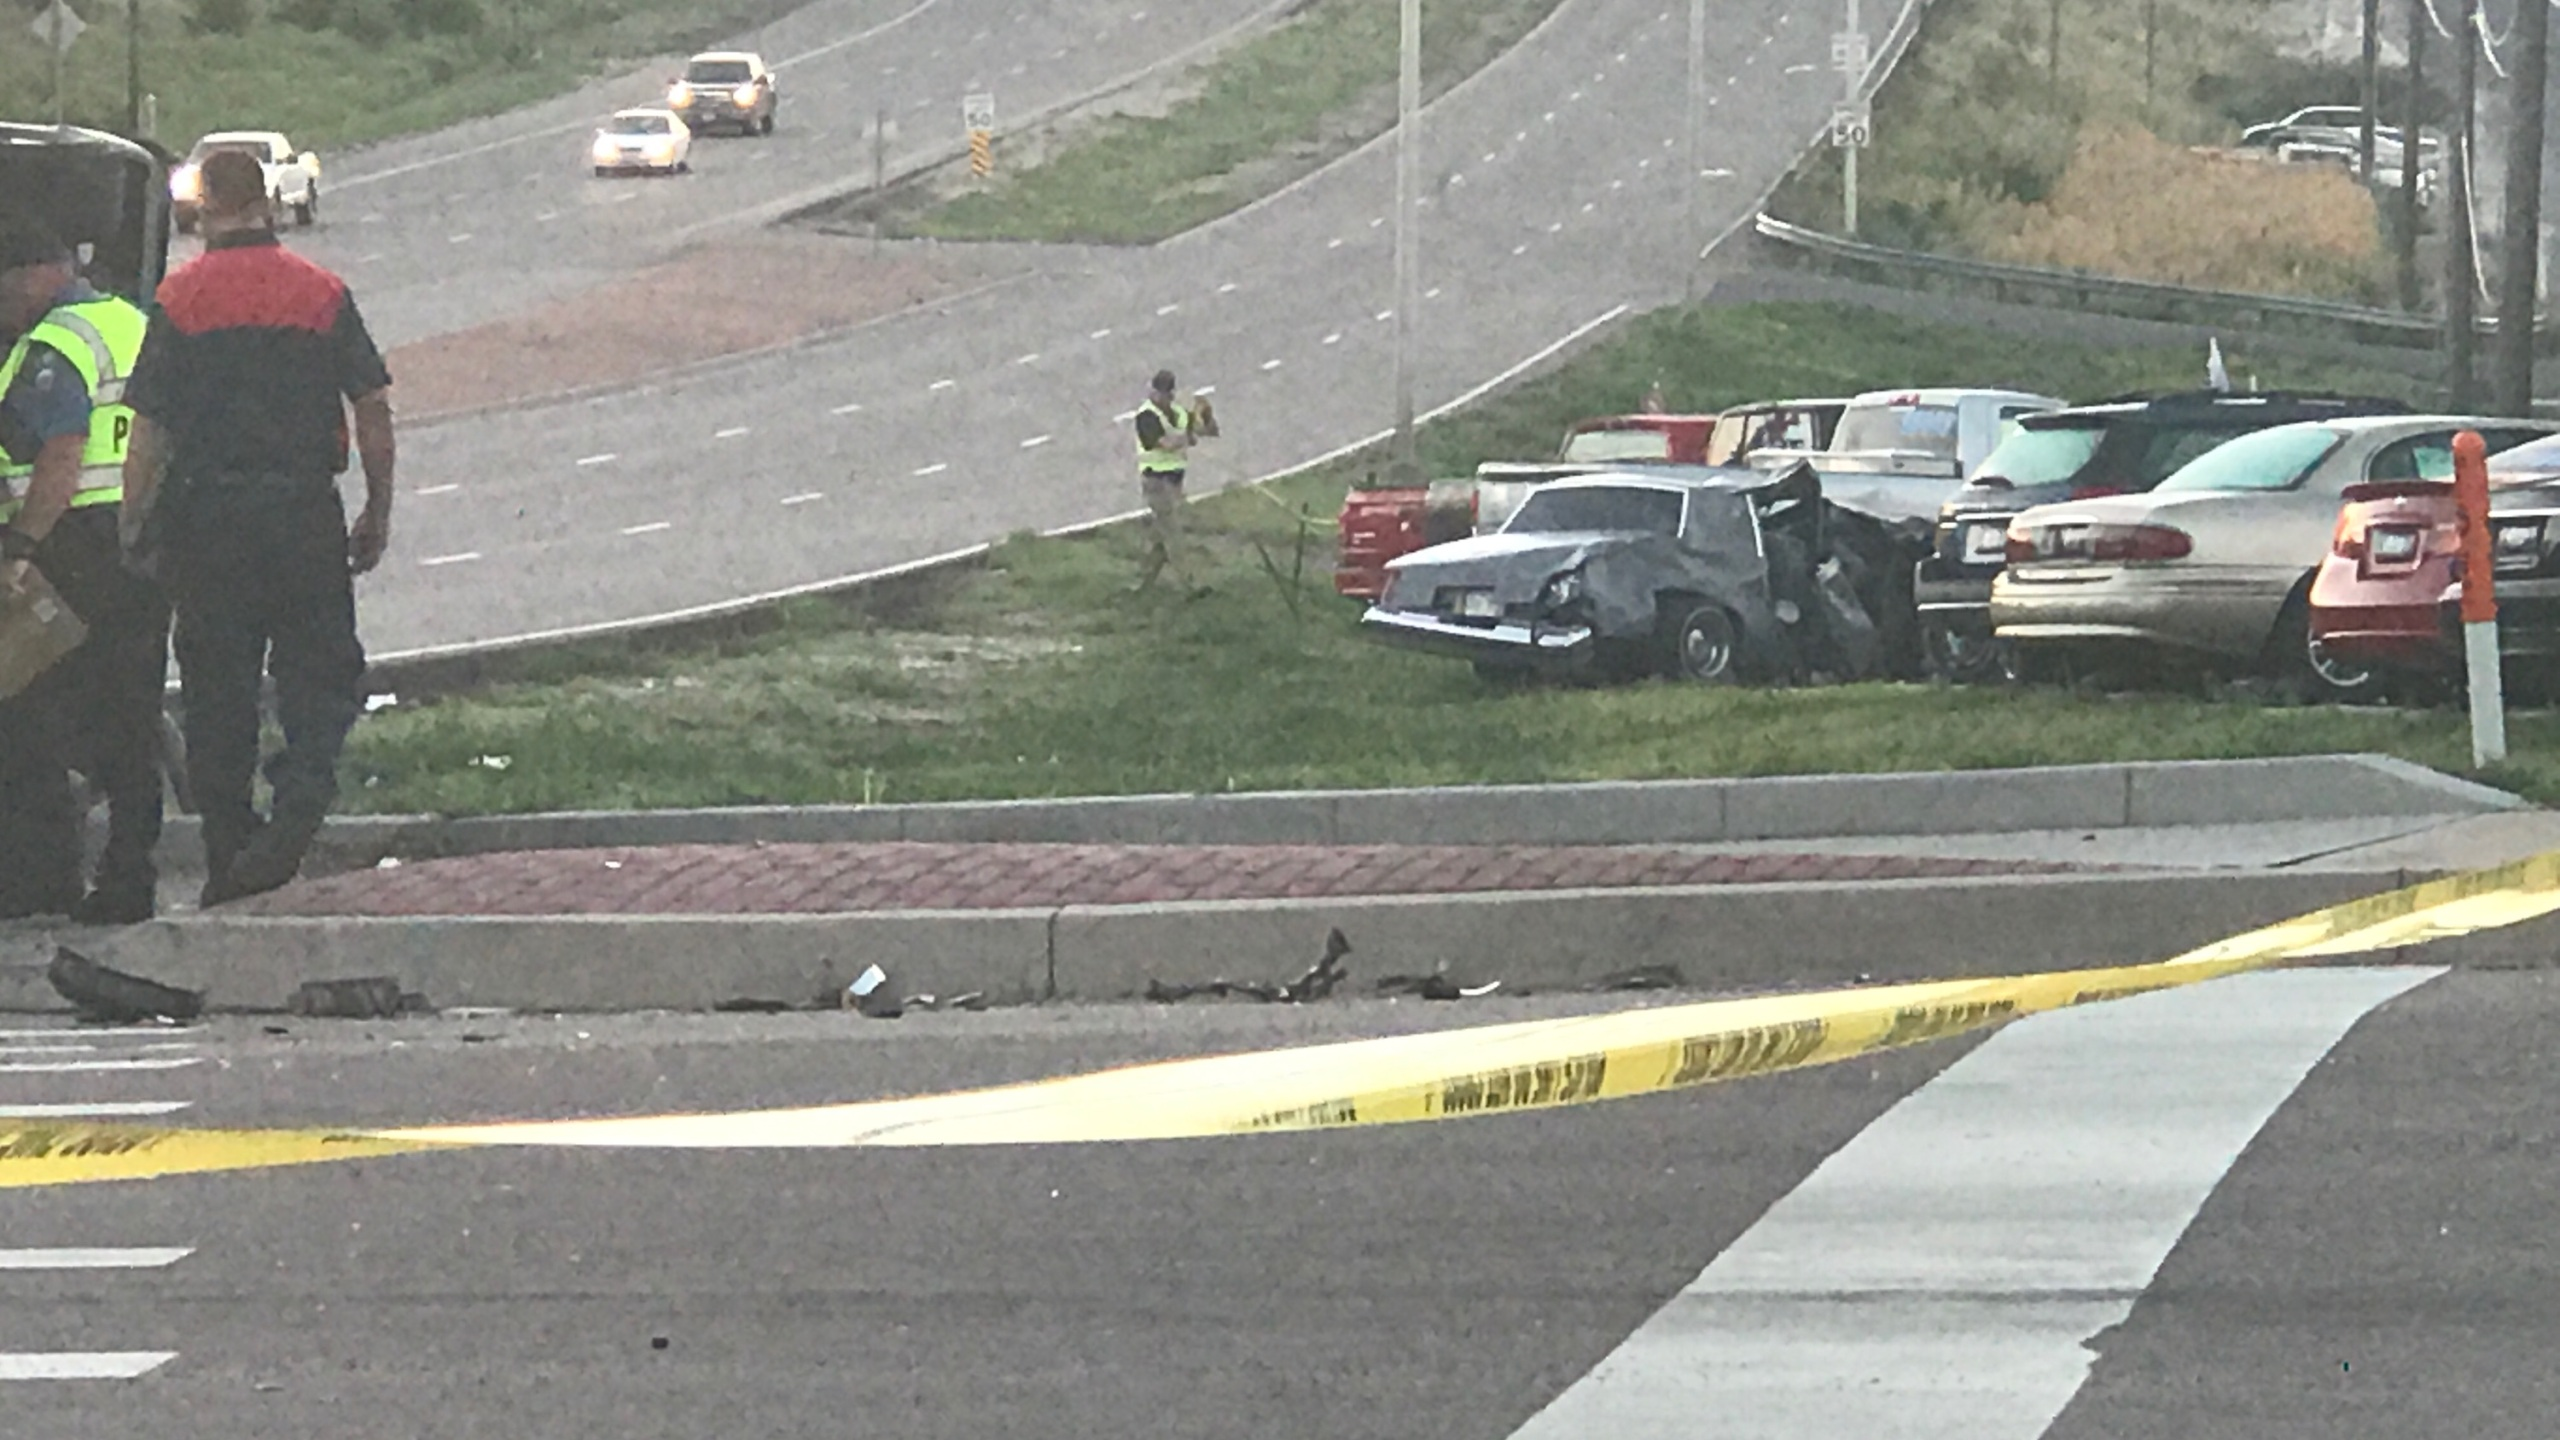 One person was killed in a crash at the intersection of Platte Avenue and Chelton Road in Colorado Springs early Monday morning. _ Brett Robert_274407